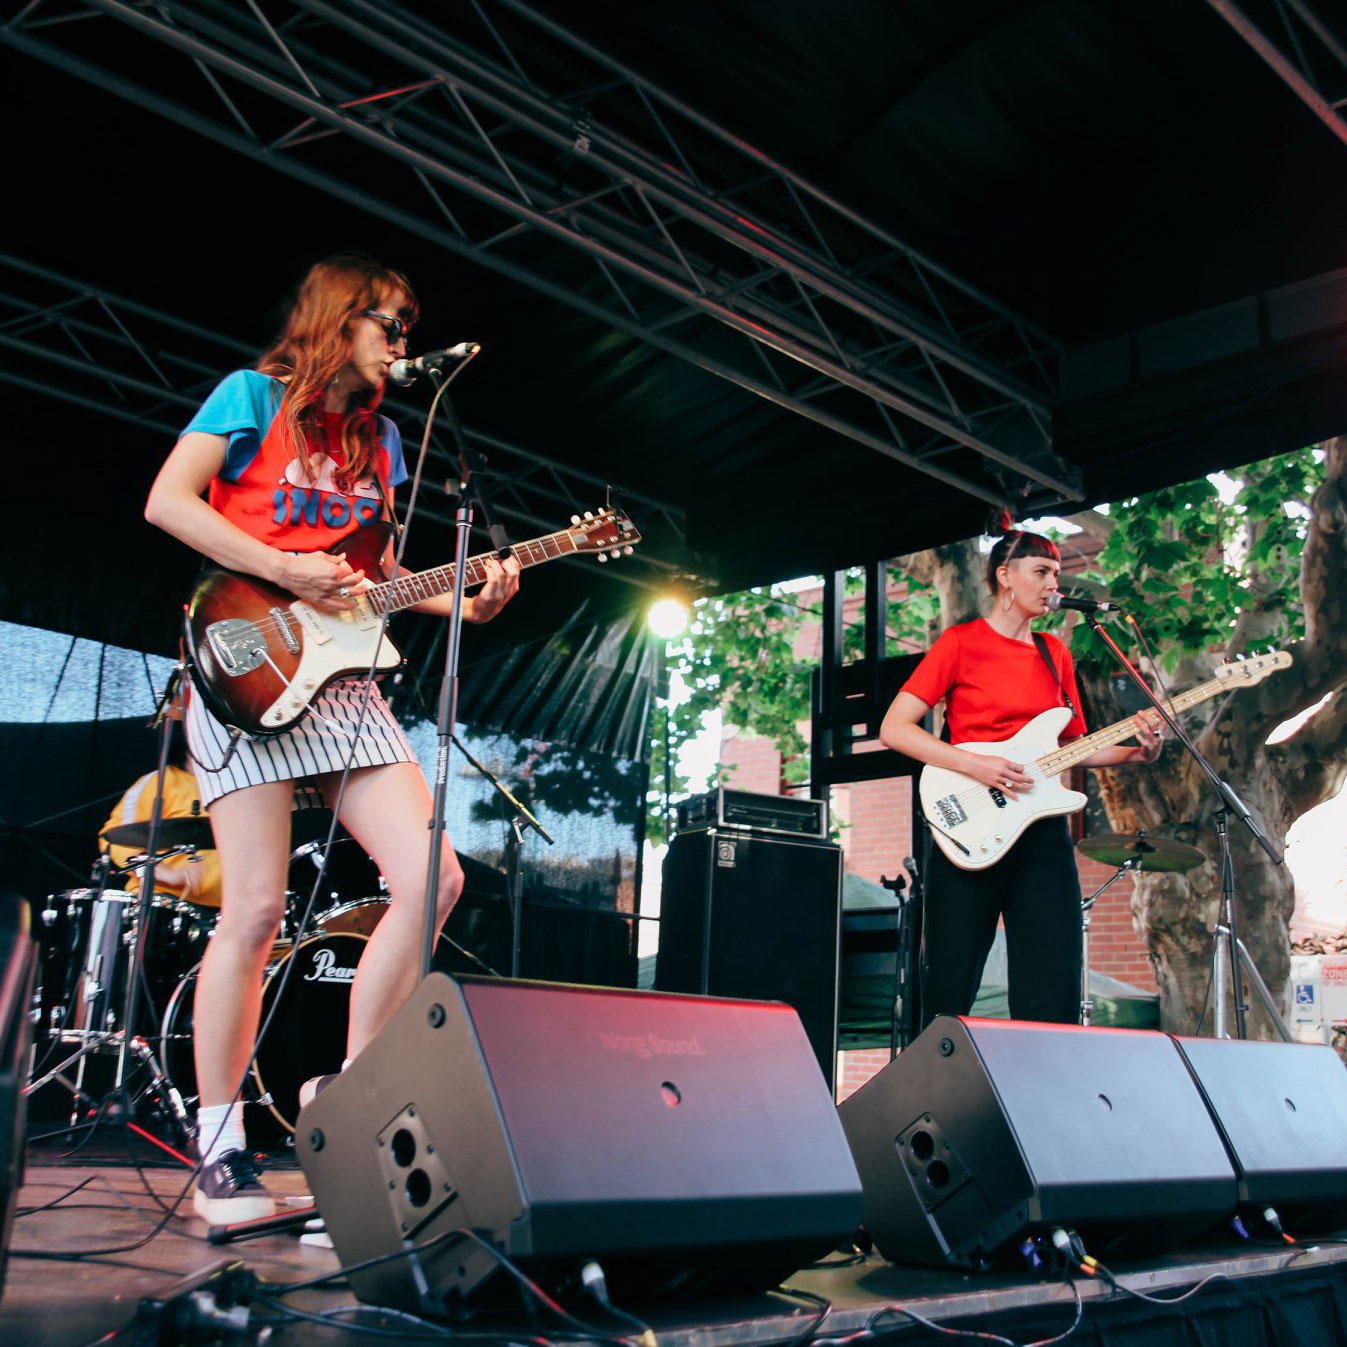 Nong Sound with MOD CON at Peel Street festival